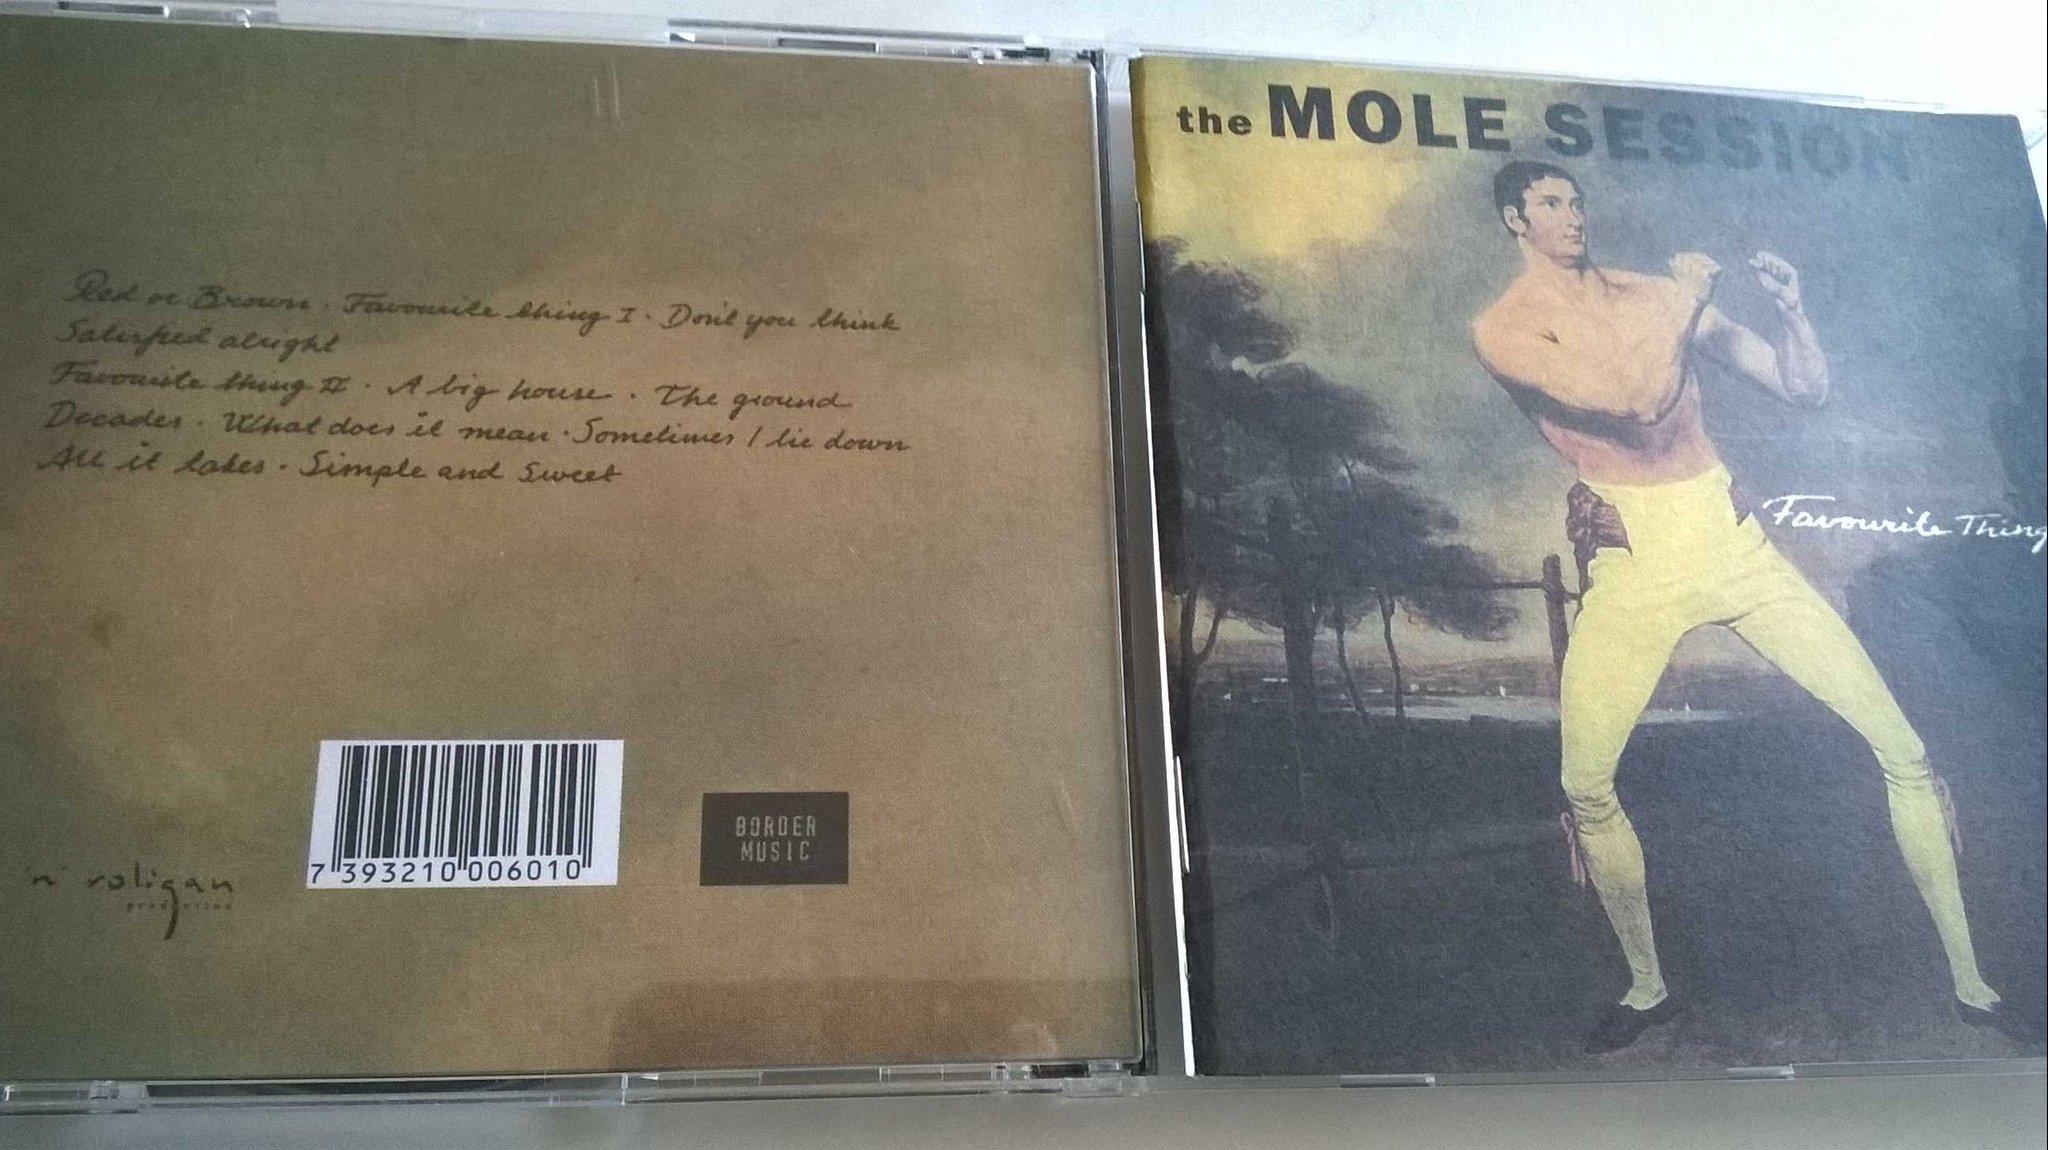 The Mole Session ... Favourite Thing, CD, rare!